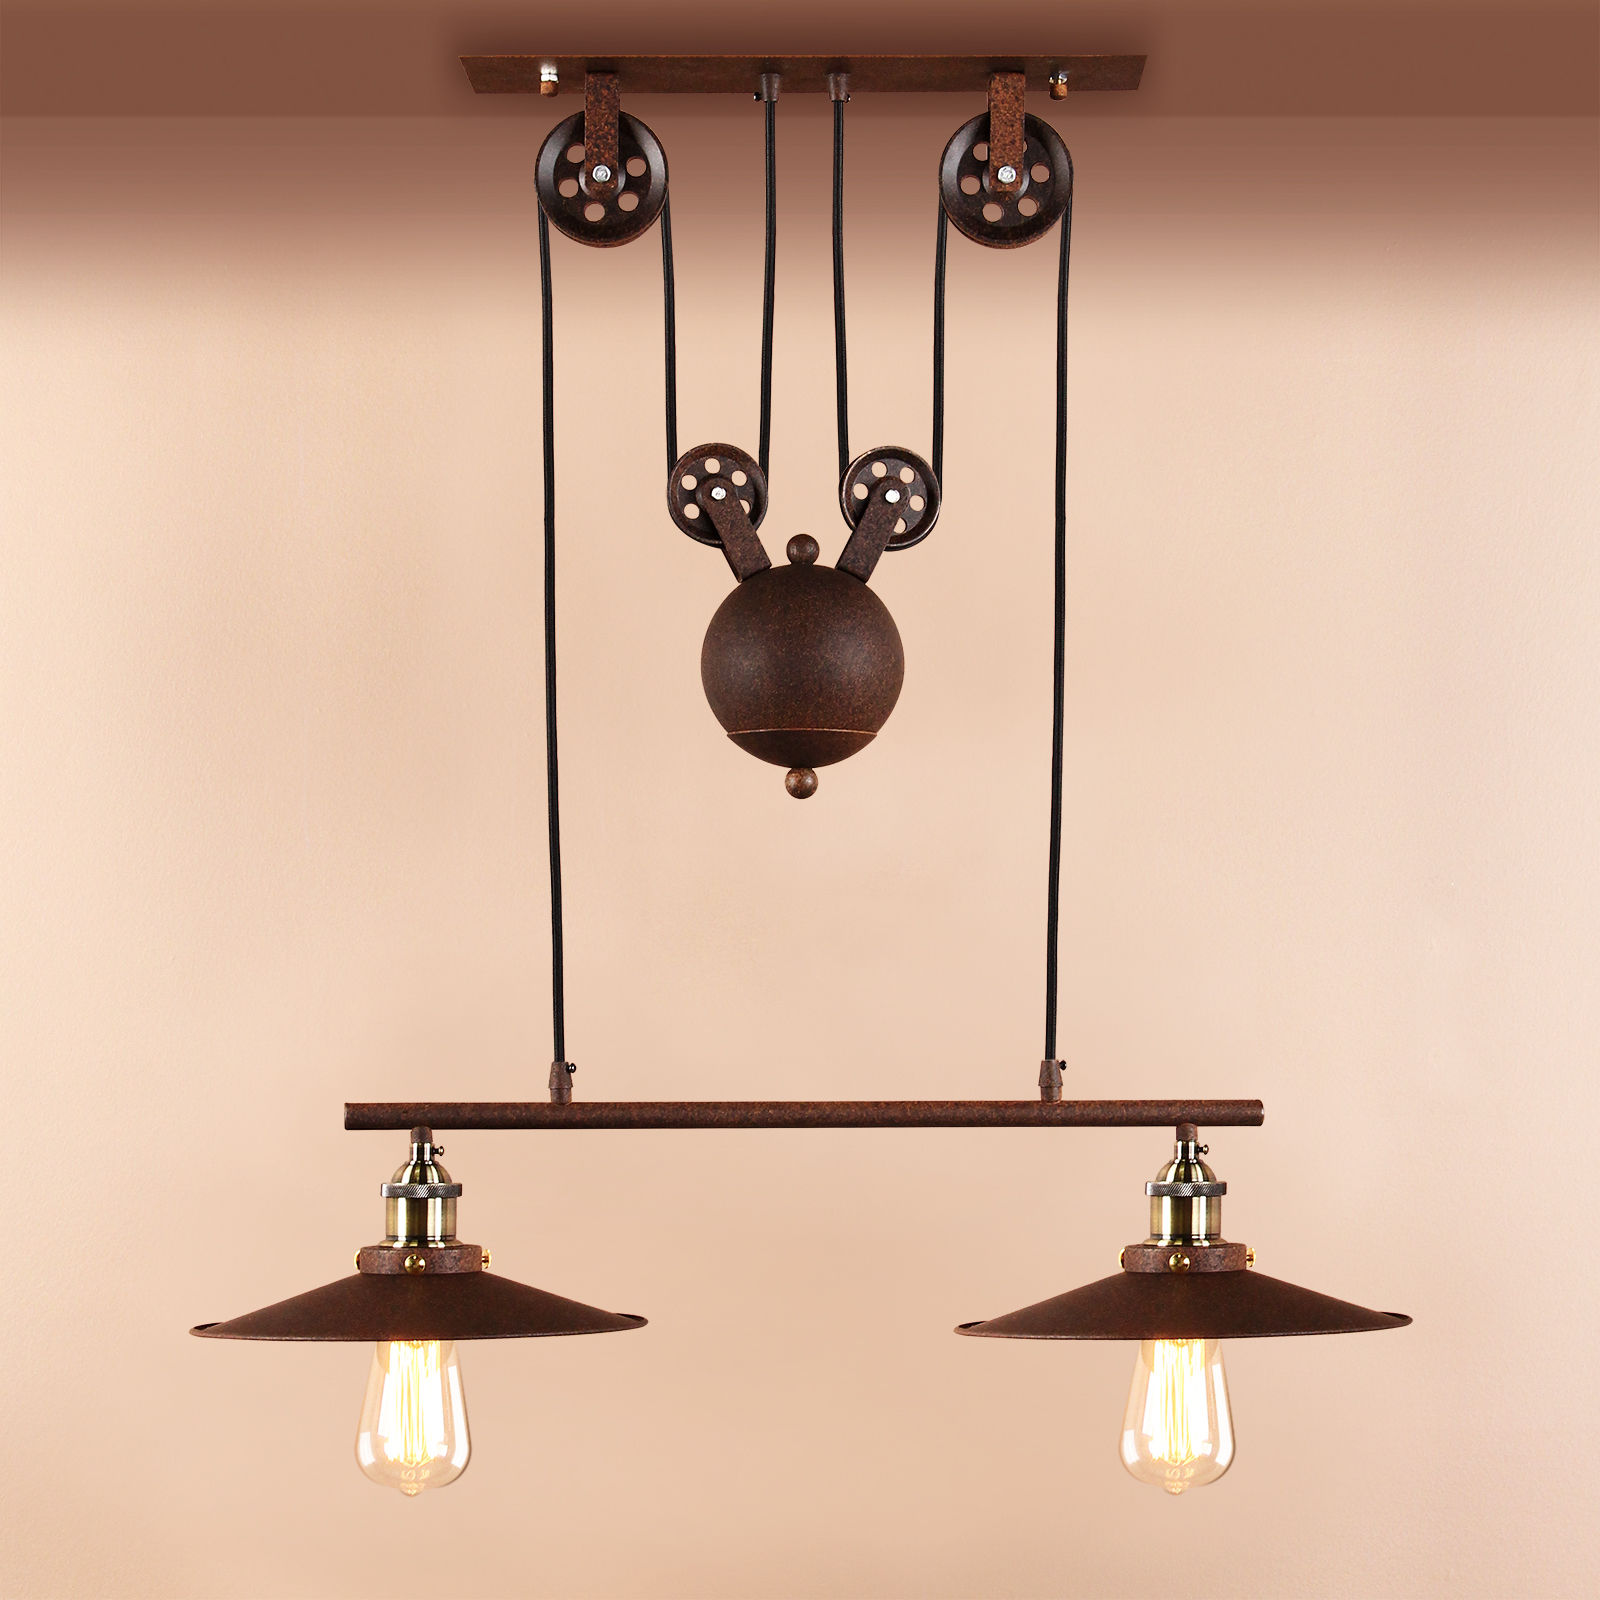 Retro Hanging Ceiling Light Vintage Industrial Pendant